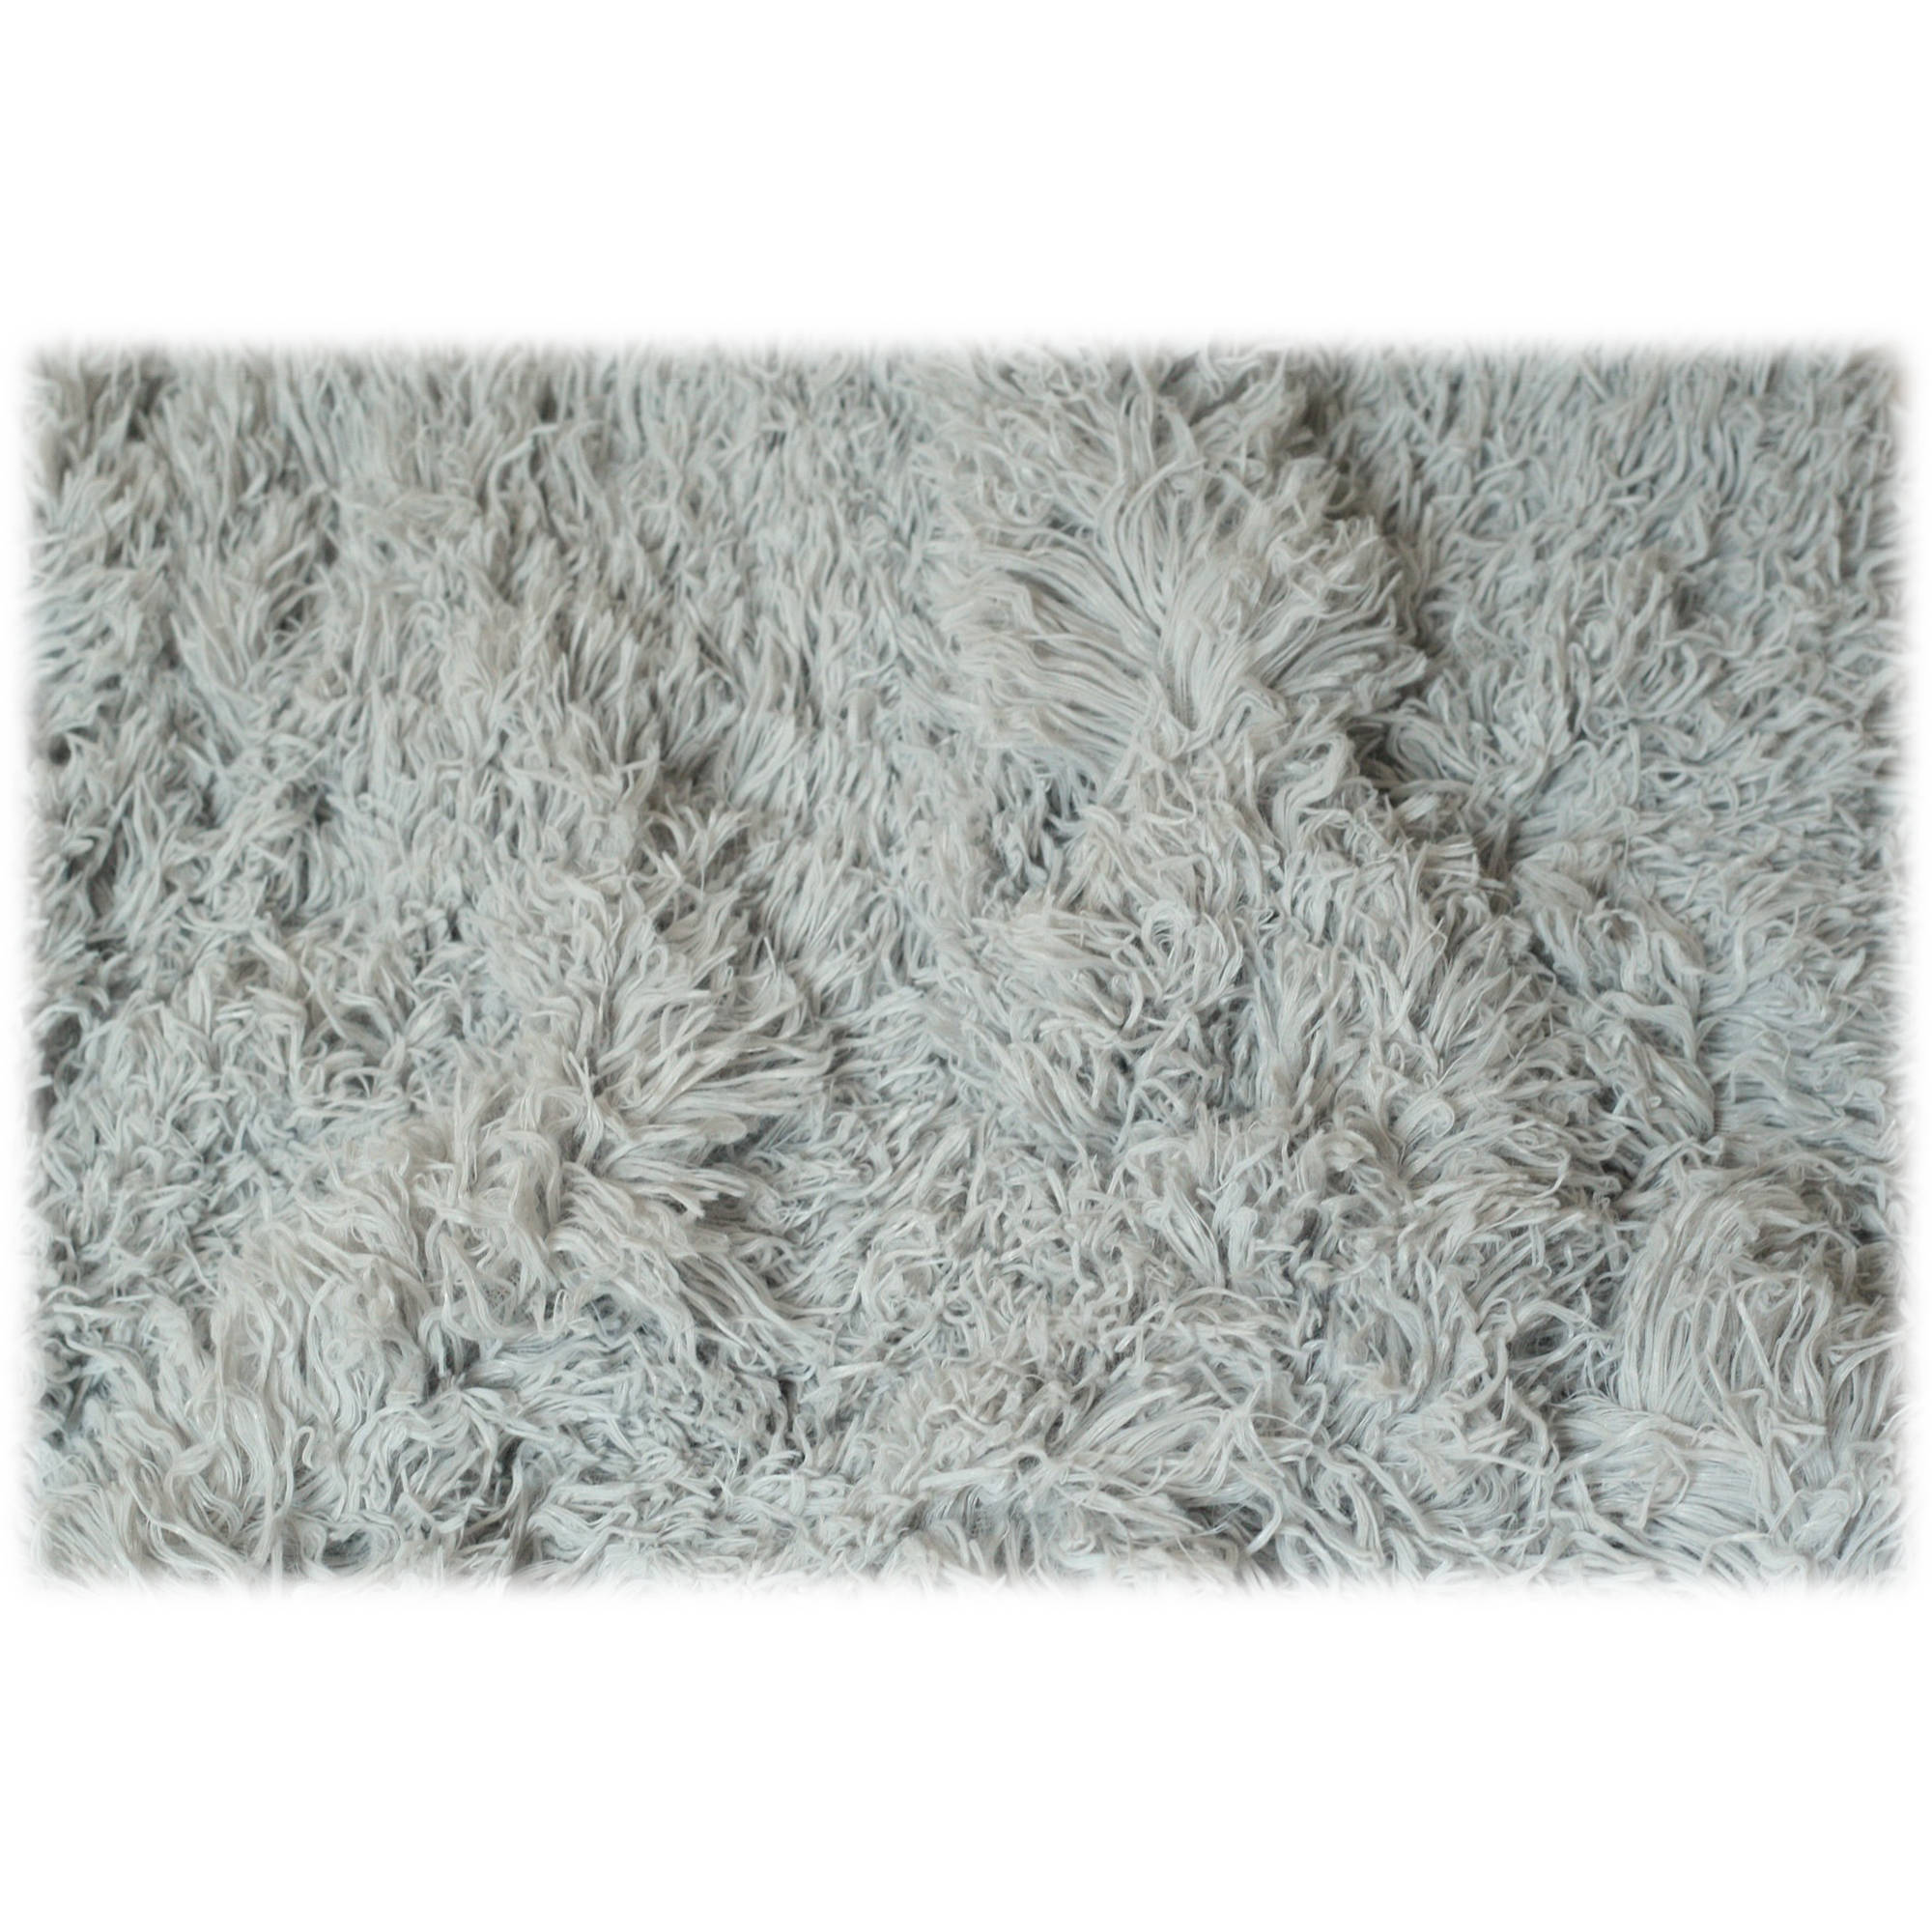 Custom Photo Props Koala Gray Faux Fur Photo Prop 1284 B&H ...